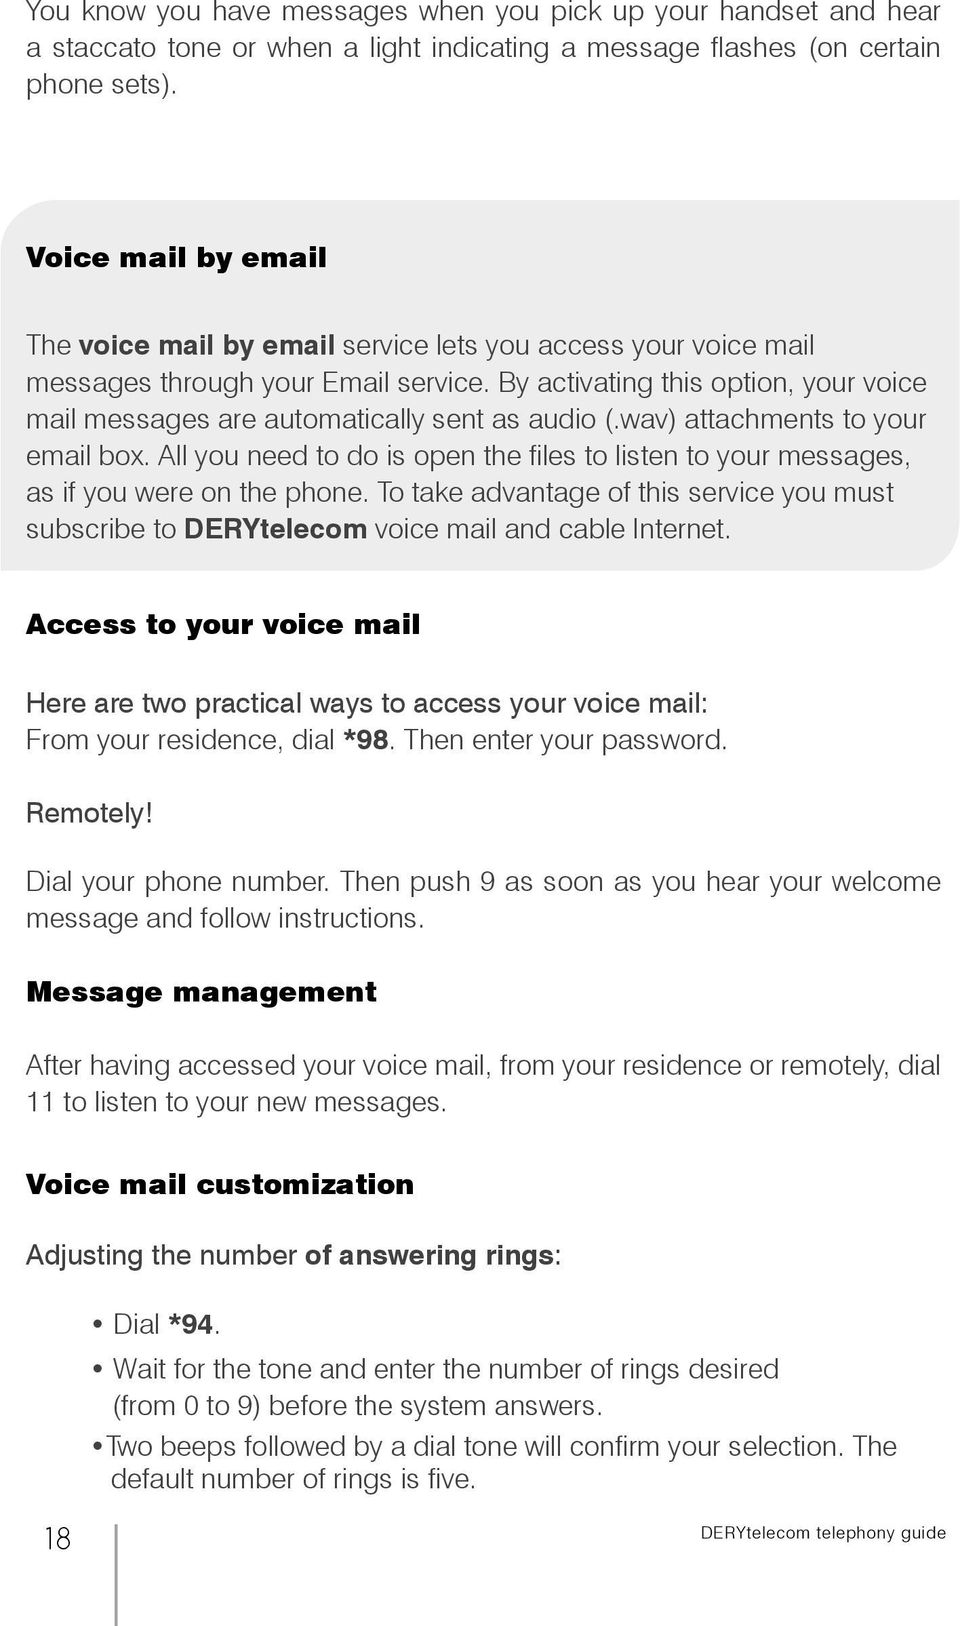 By activating this option, your voice mail messages are automatically sent as audio (.wav) attachments to your email box.